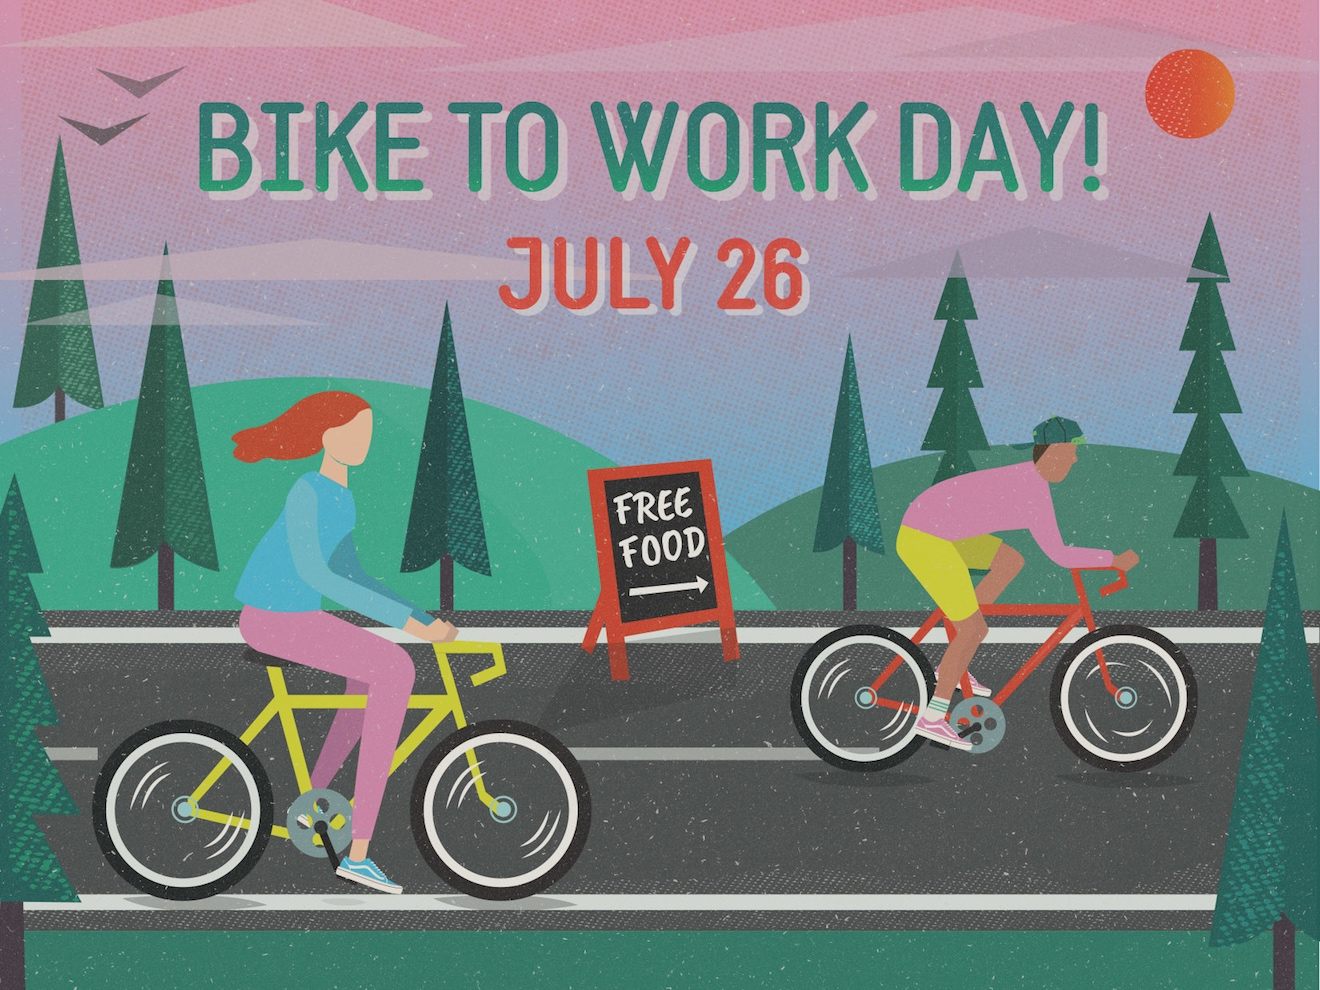 Bike-To-Work-Day Creative Horizontal Event Flyer Example2